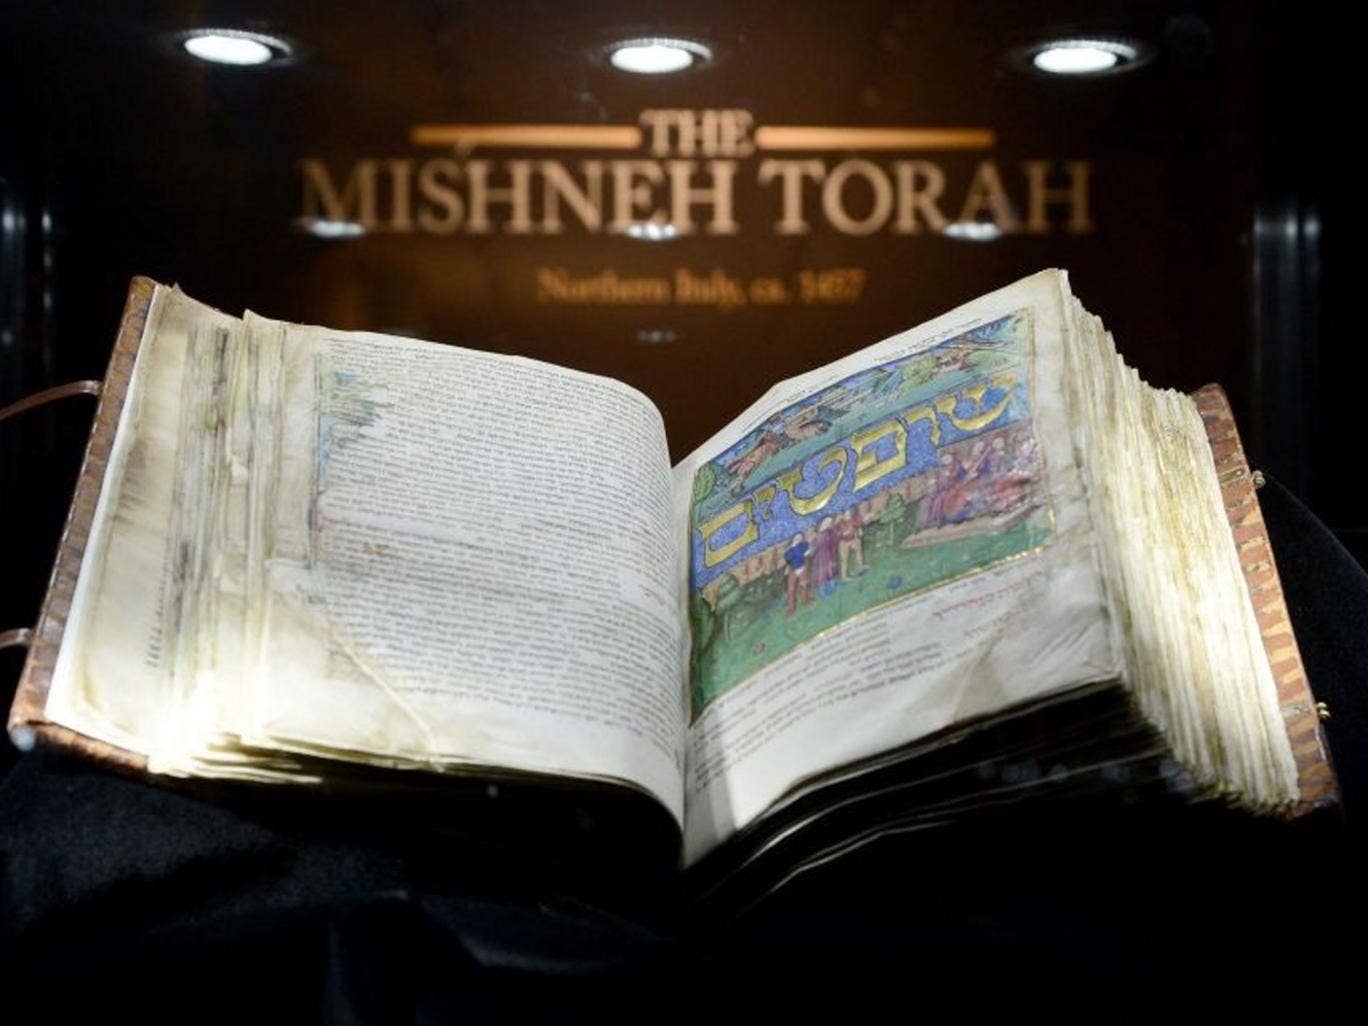 The Mishneh Torah on display at Sotheby's  in New York